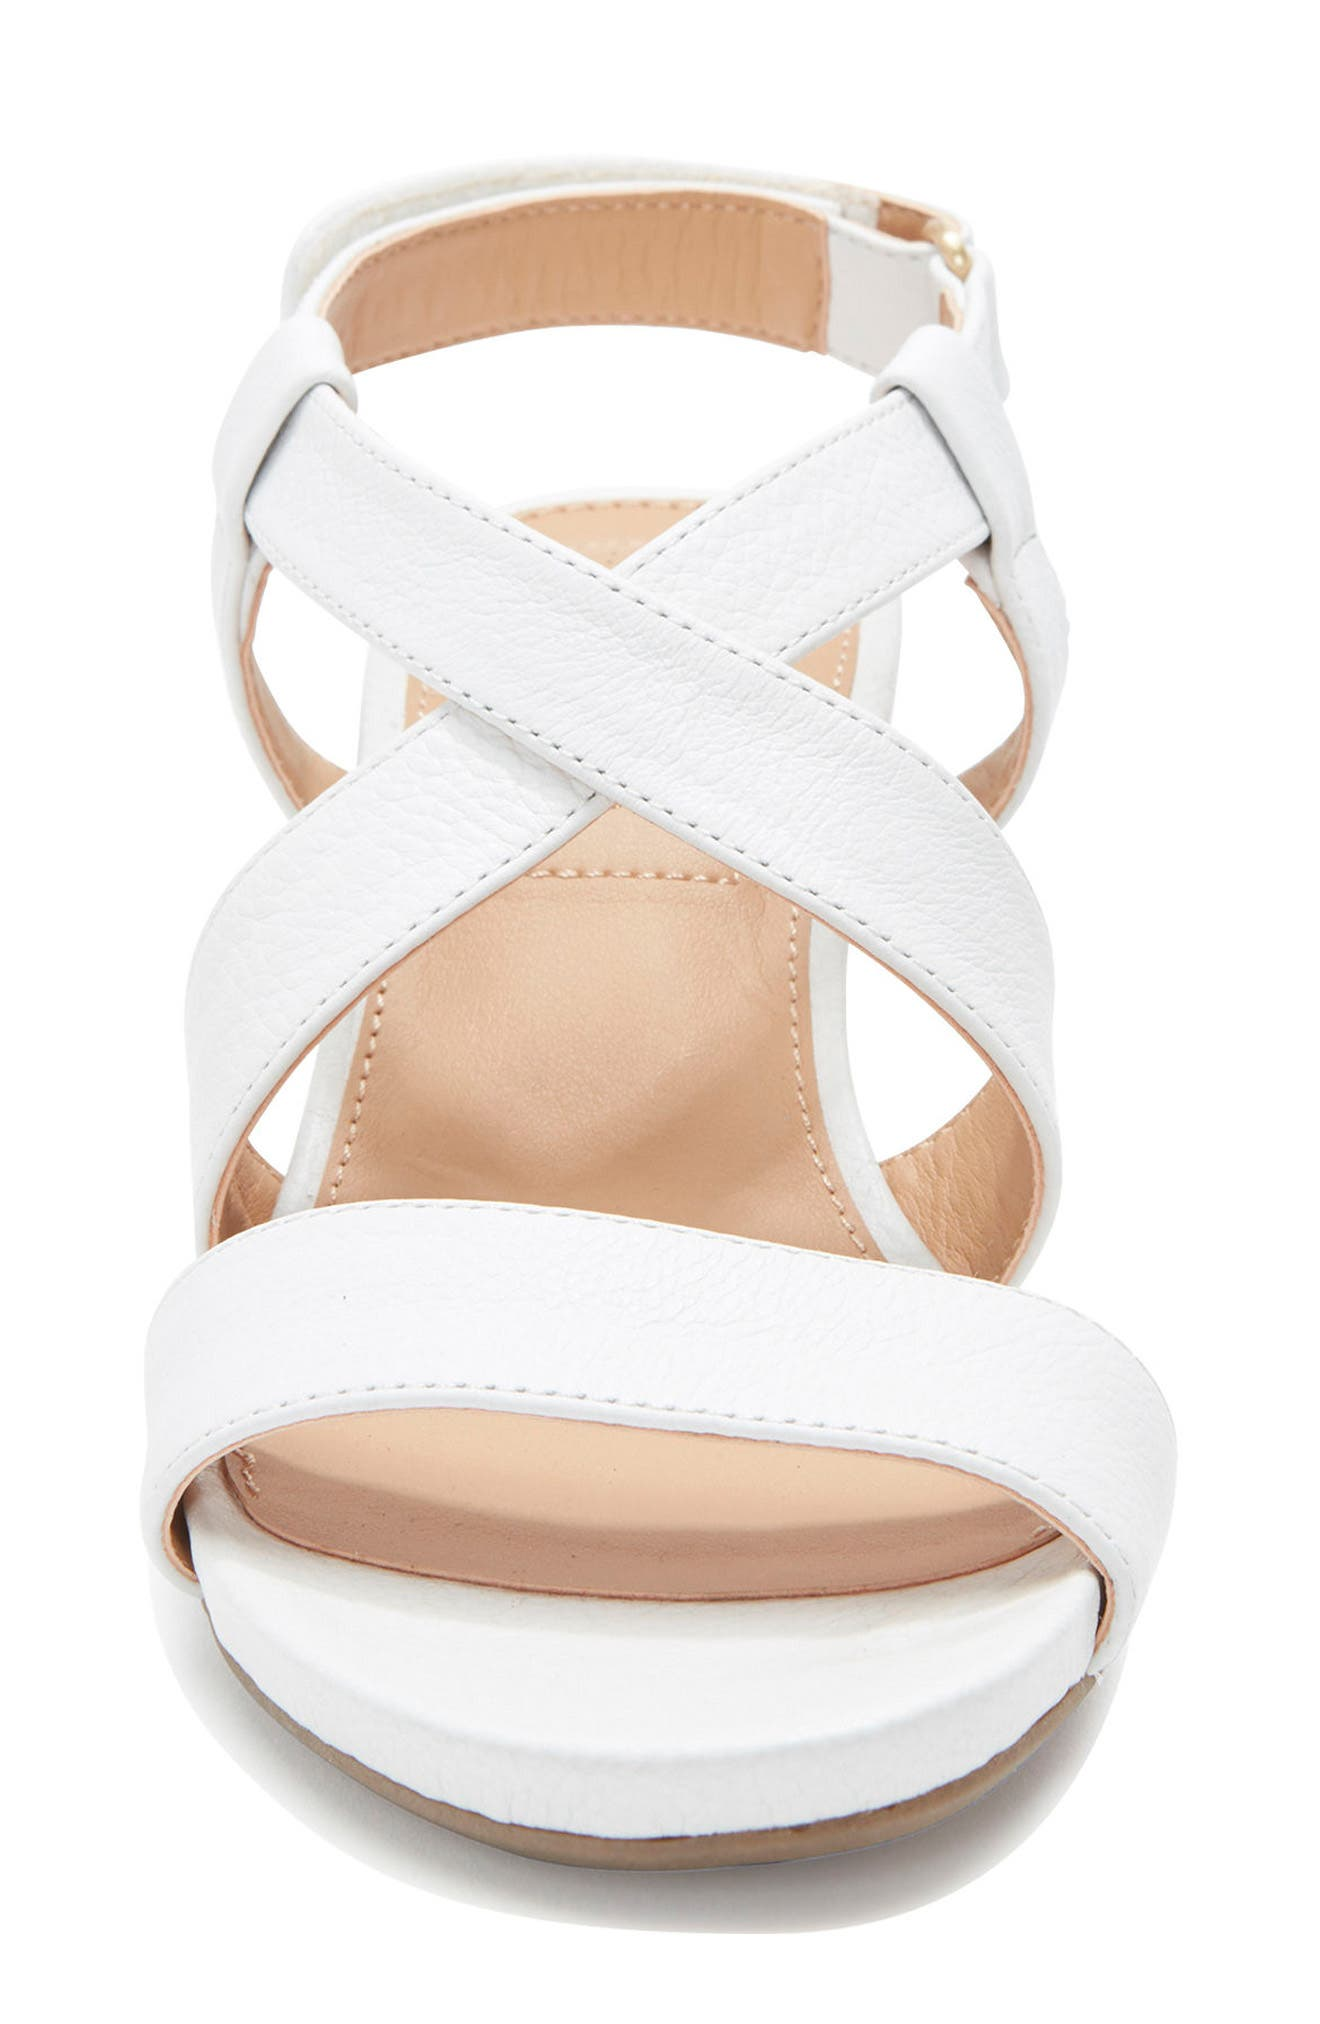 Payton Strappy Wedge,                             Alternate thumbnail 5, color,                             White Leather